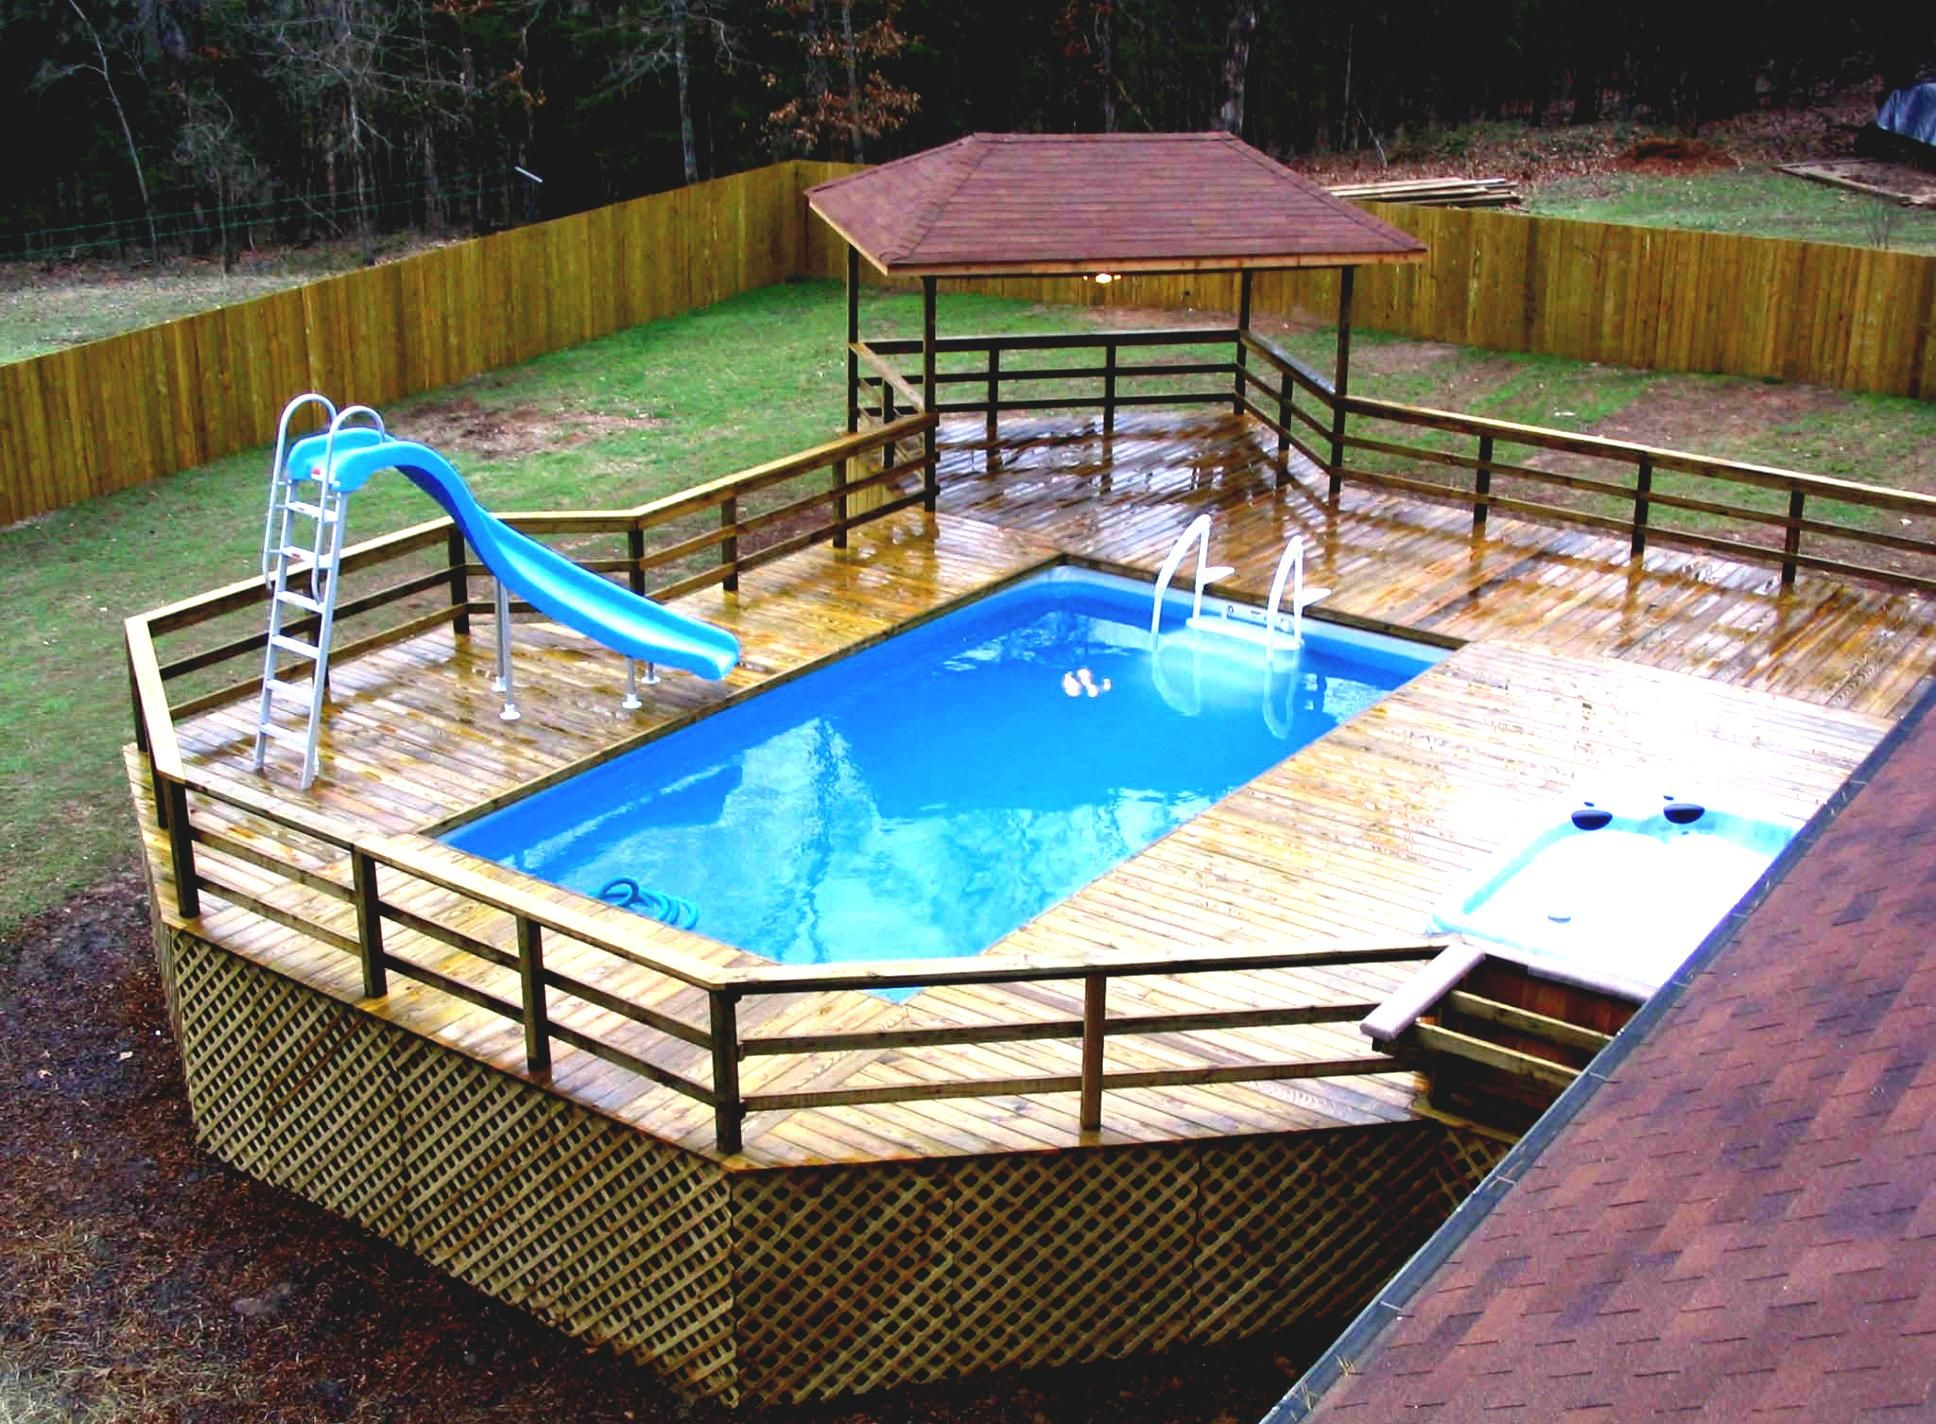 Intex above ground pool landscaping ideas pdf backyard for Pool landscapes ideas pictures